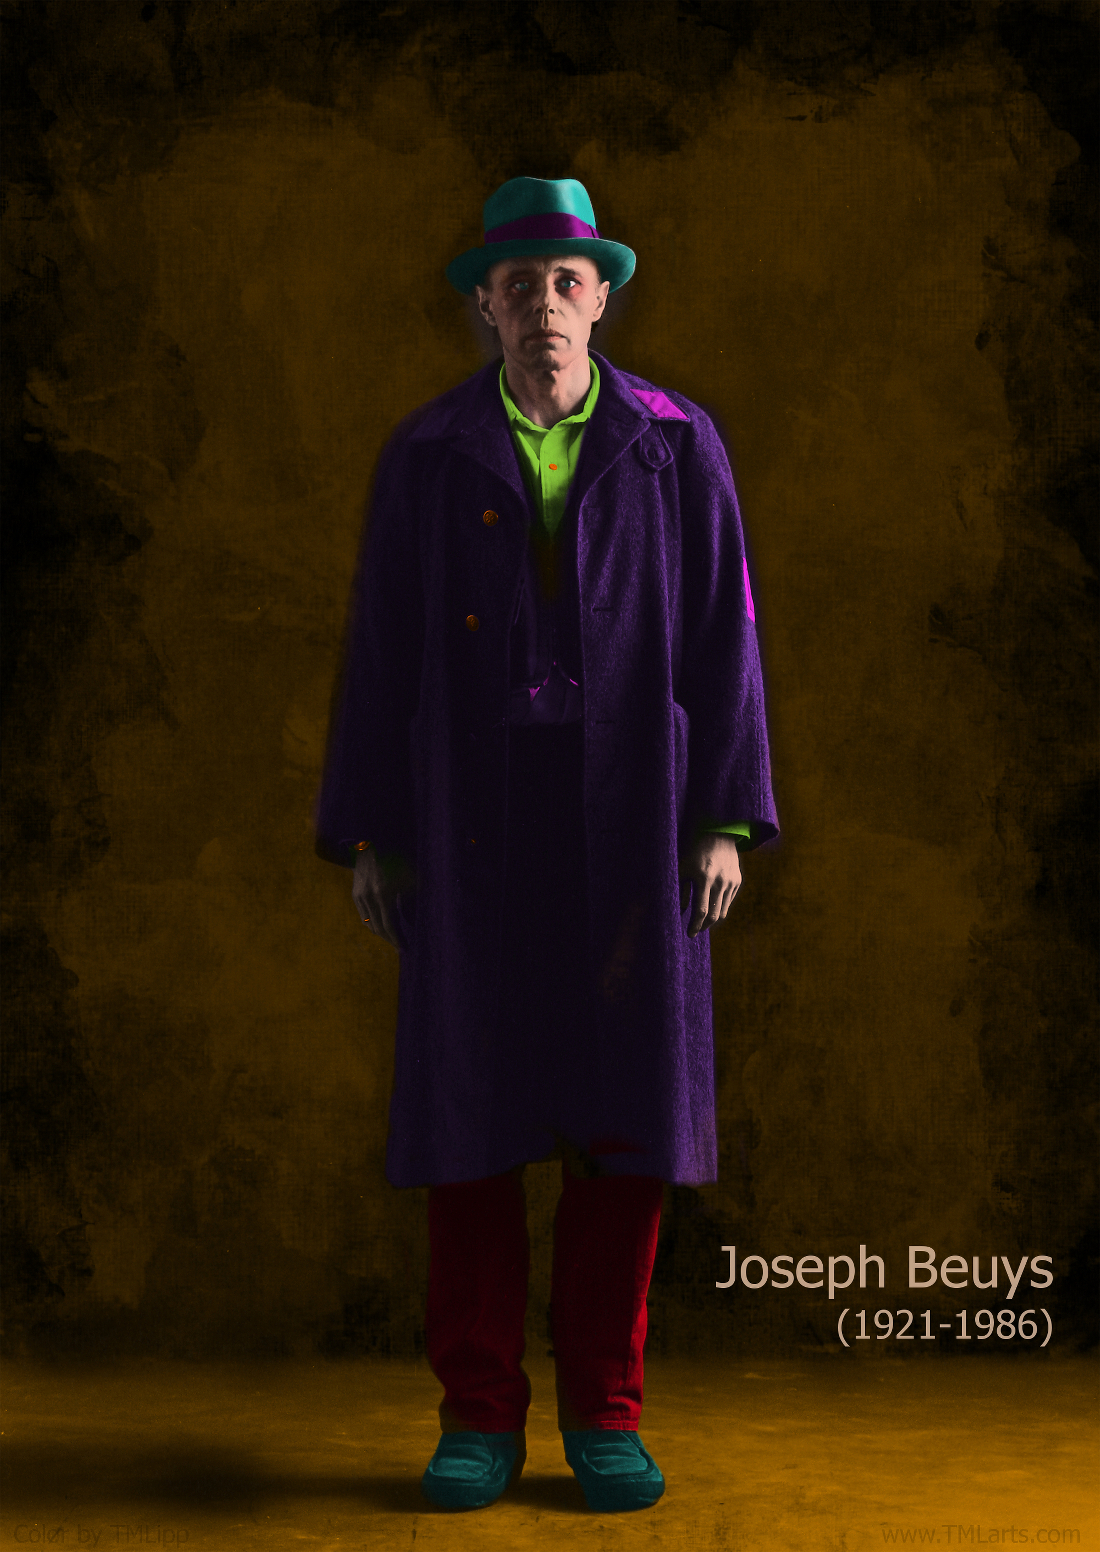 Joseph Beuys, 1972 (color by TMLipp)